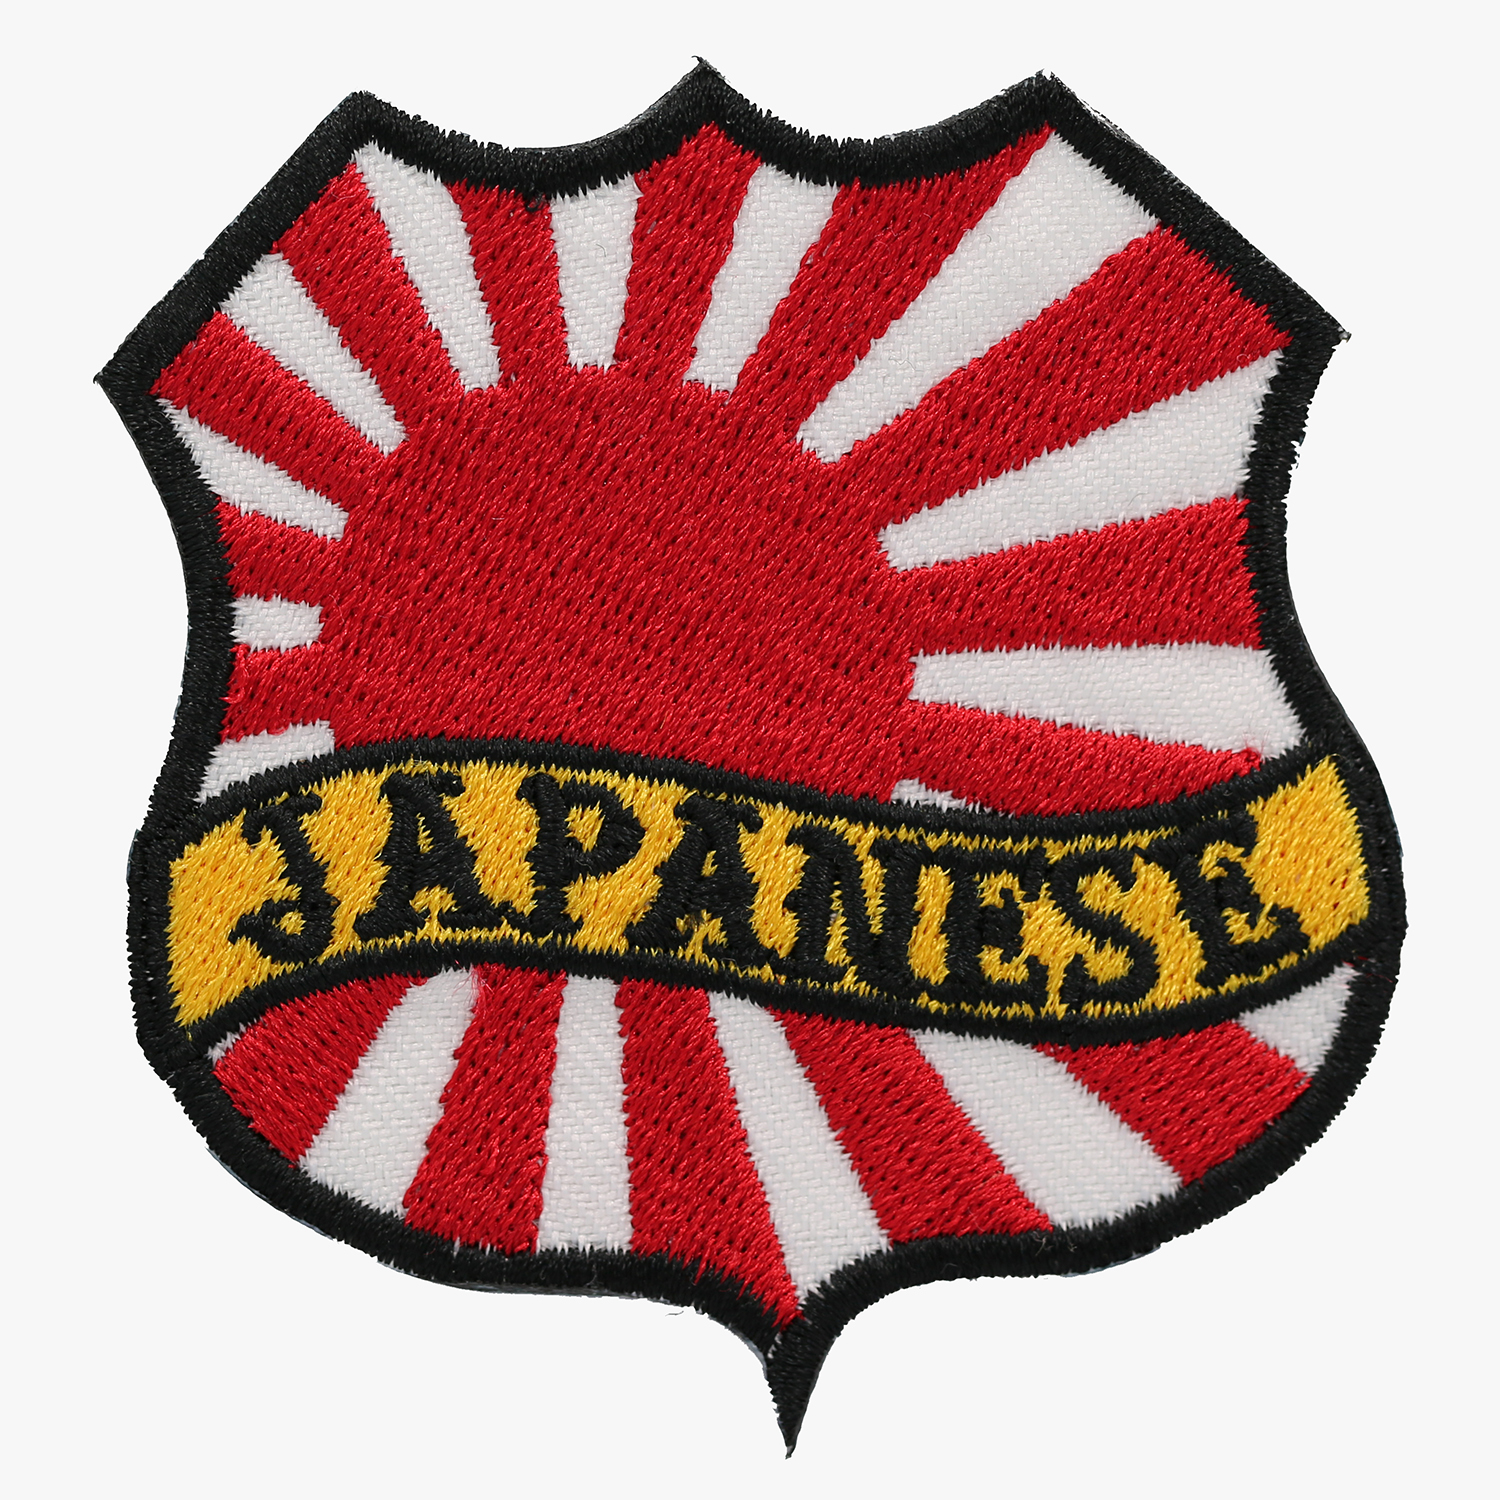 JAPANESE FLAG BANNER SHIELD BIKER MC PATCH